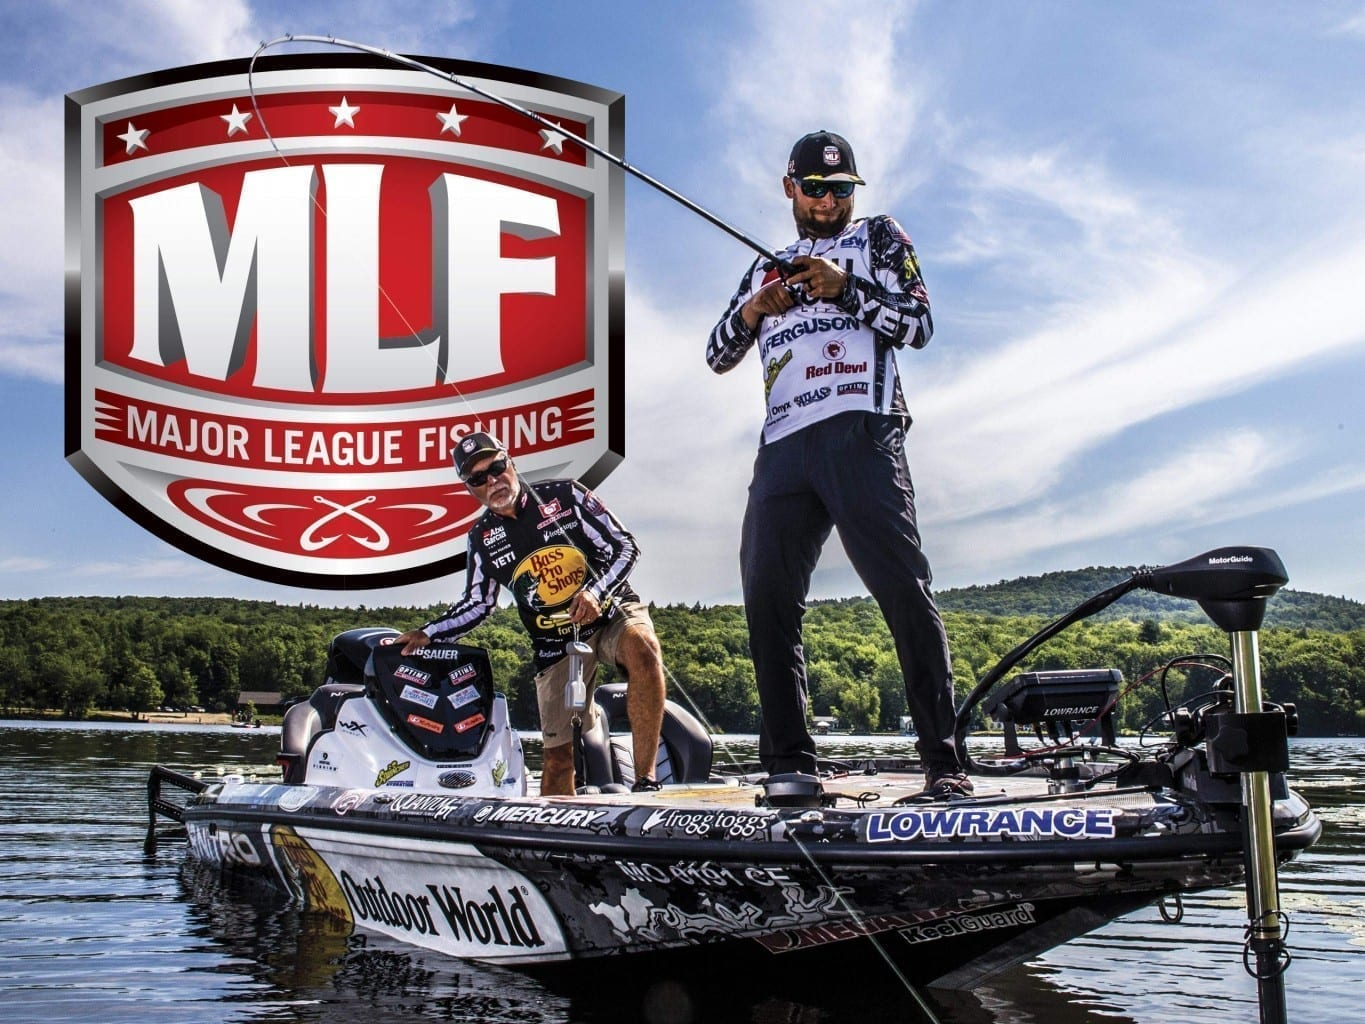 Major League Fishing Bass Pro Tour will be back on Lake Winnebago in 2020